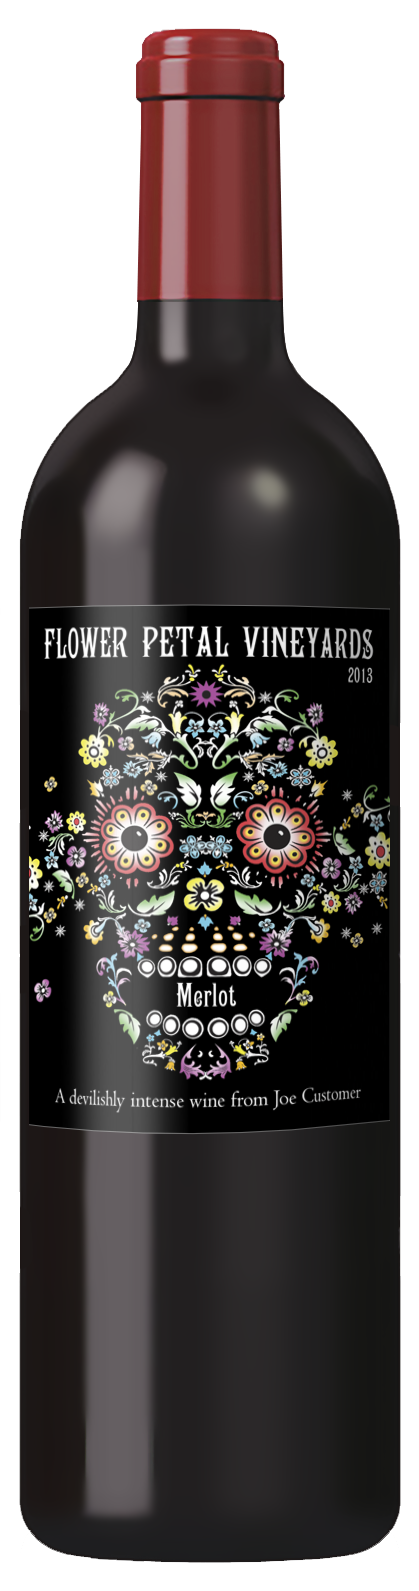 personalized custom wine label of skull made of flowers